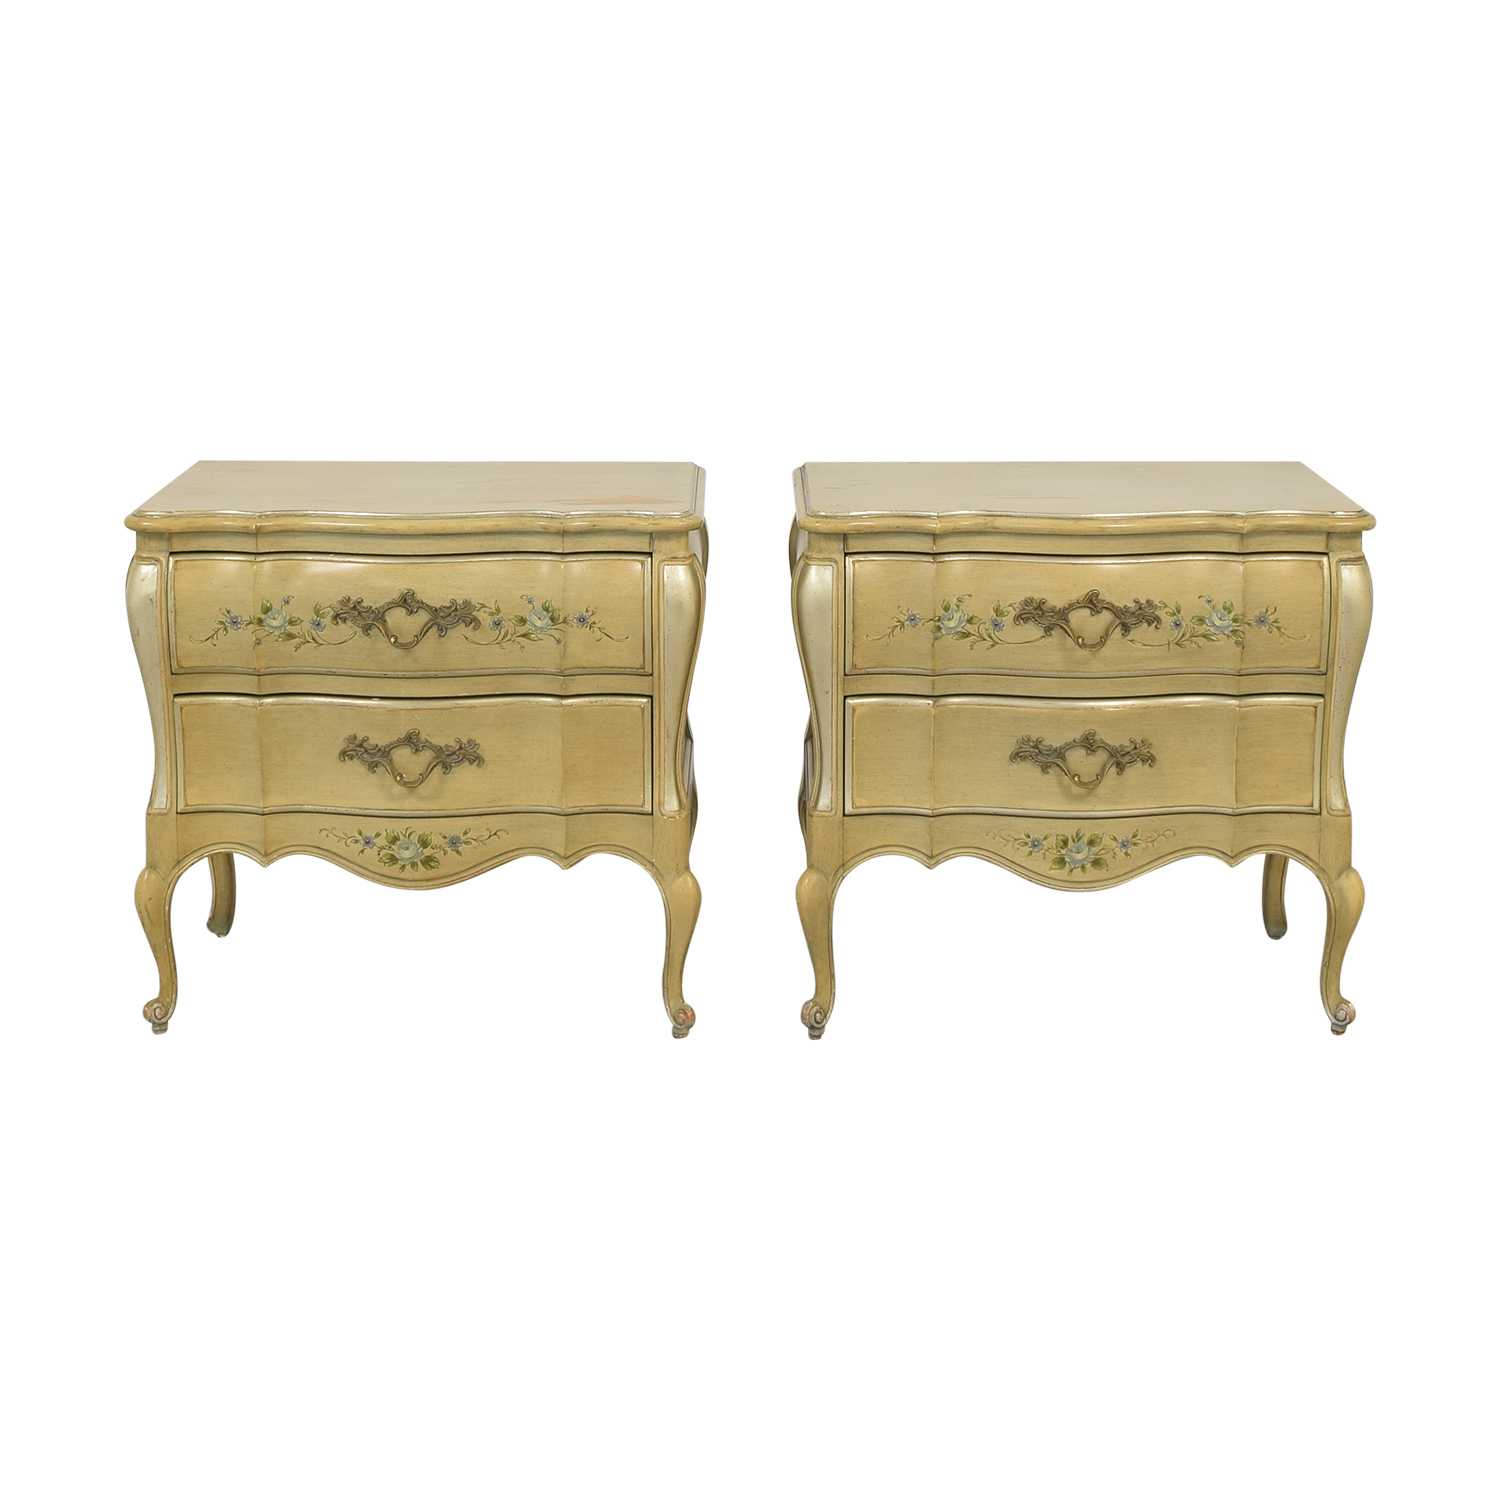 Rucker Industries Rucker Industries Dixon Powdermaker French Provincial Style Nightstands End Tables